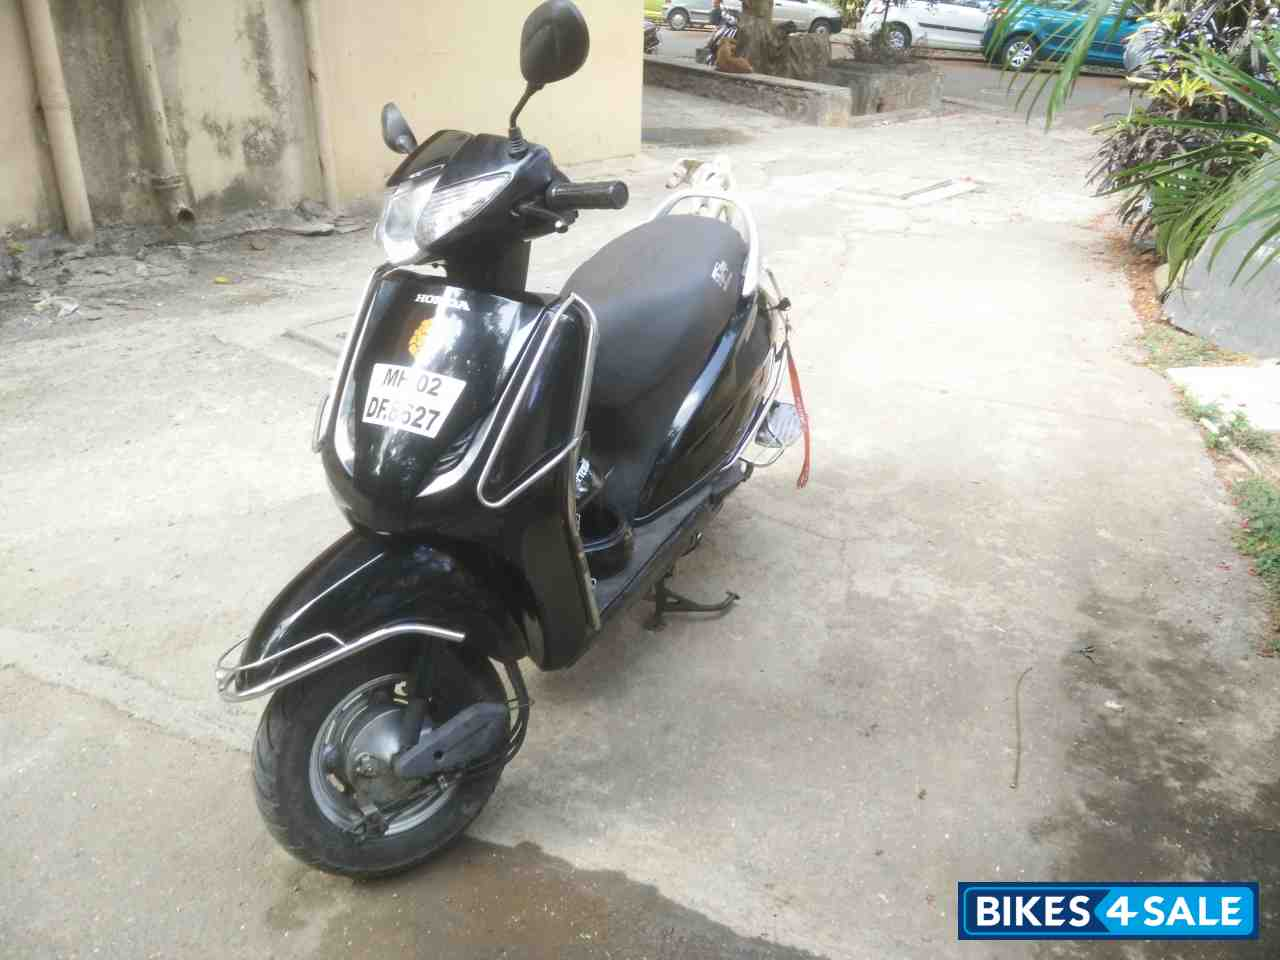 Icici Lombard 2 Wheeler Insurance Price >> Black Honda Activa for sale in Mumbai. Advantages of buying my activa 1)extended engine n parts ...